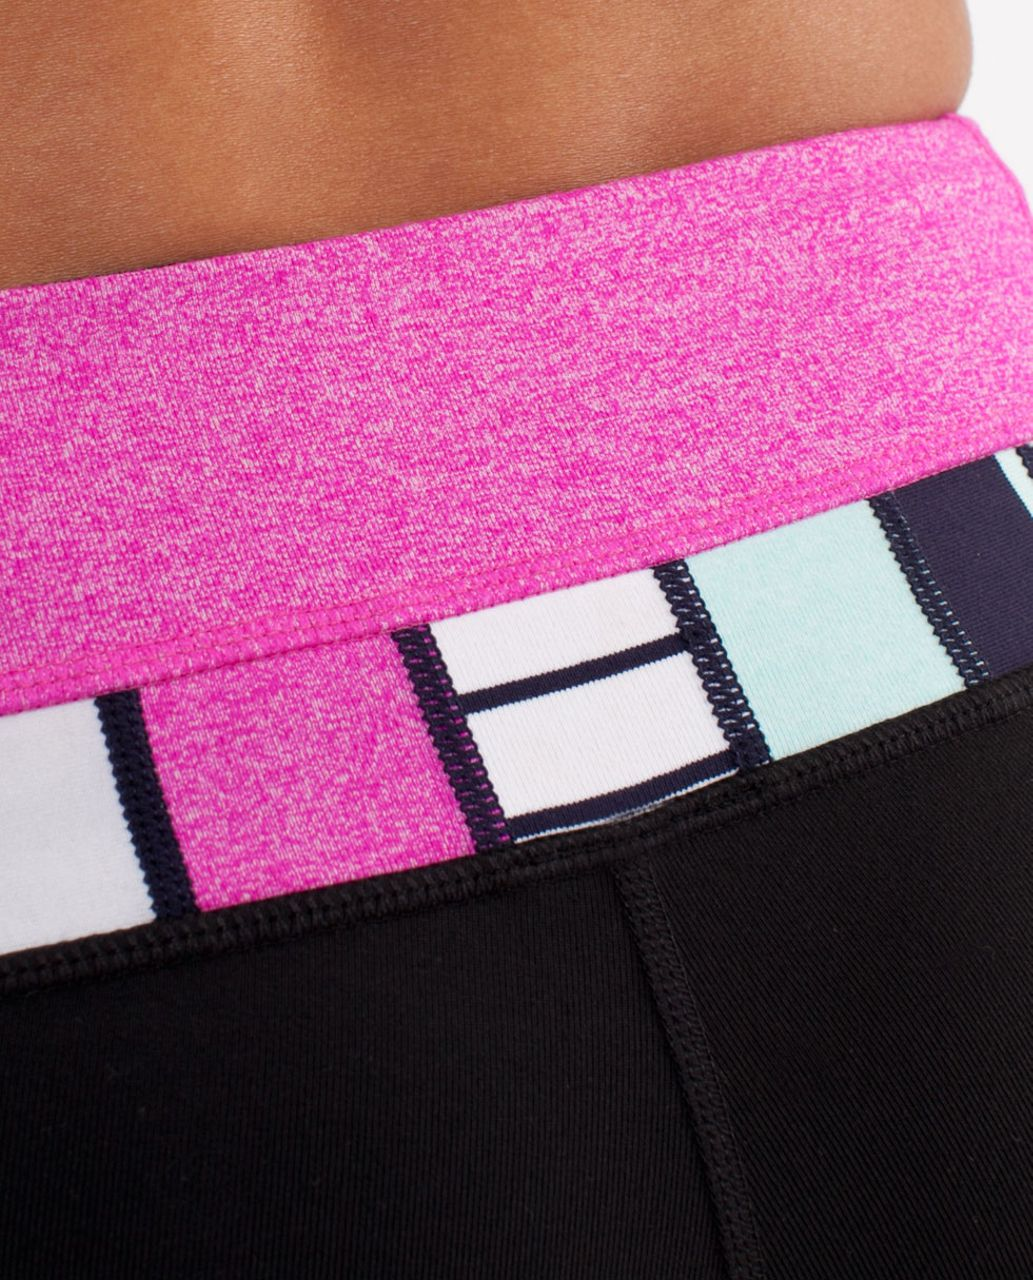 Lululemon Groove Pant (Tall) - Black /  Heathered Paris Pink /  Quilting Spring 14